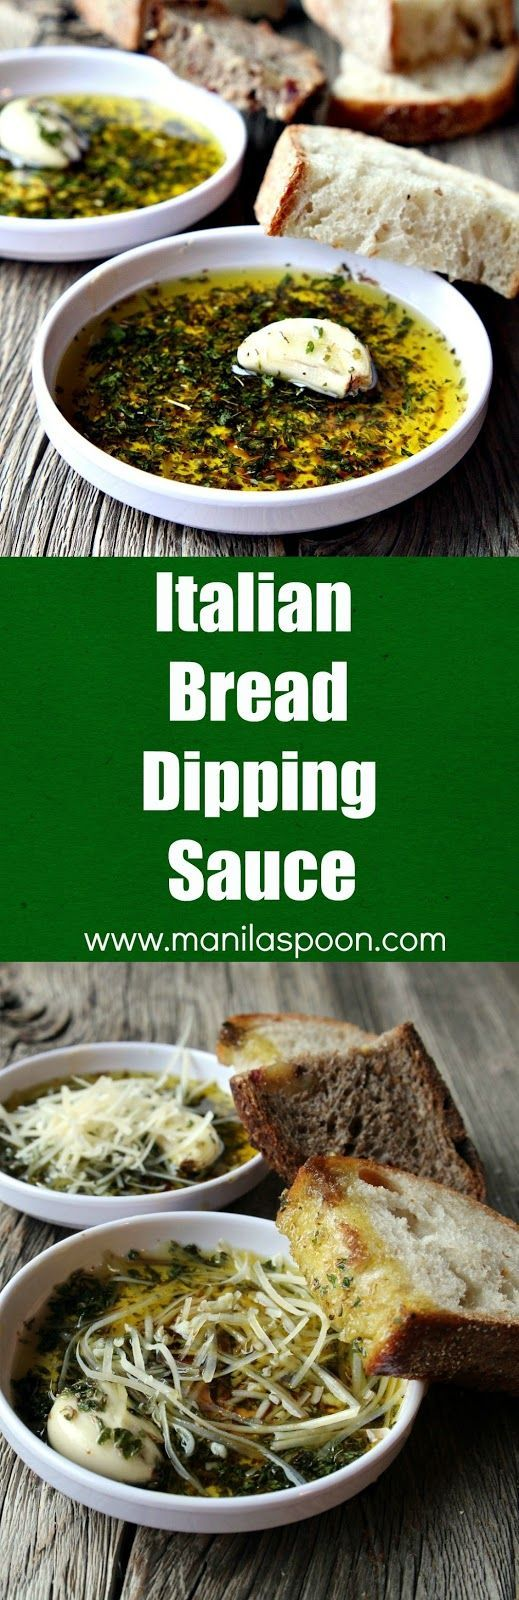 Restaurant-style sauce with Italian herbs and balsamic vinegar perfect for dipping your favorite crusty bread. Mix it up with your favorite herbs and add a spicy kick to create your own flavor blend. Italian Bread Dipping Oil (Sauce)